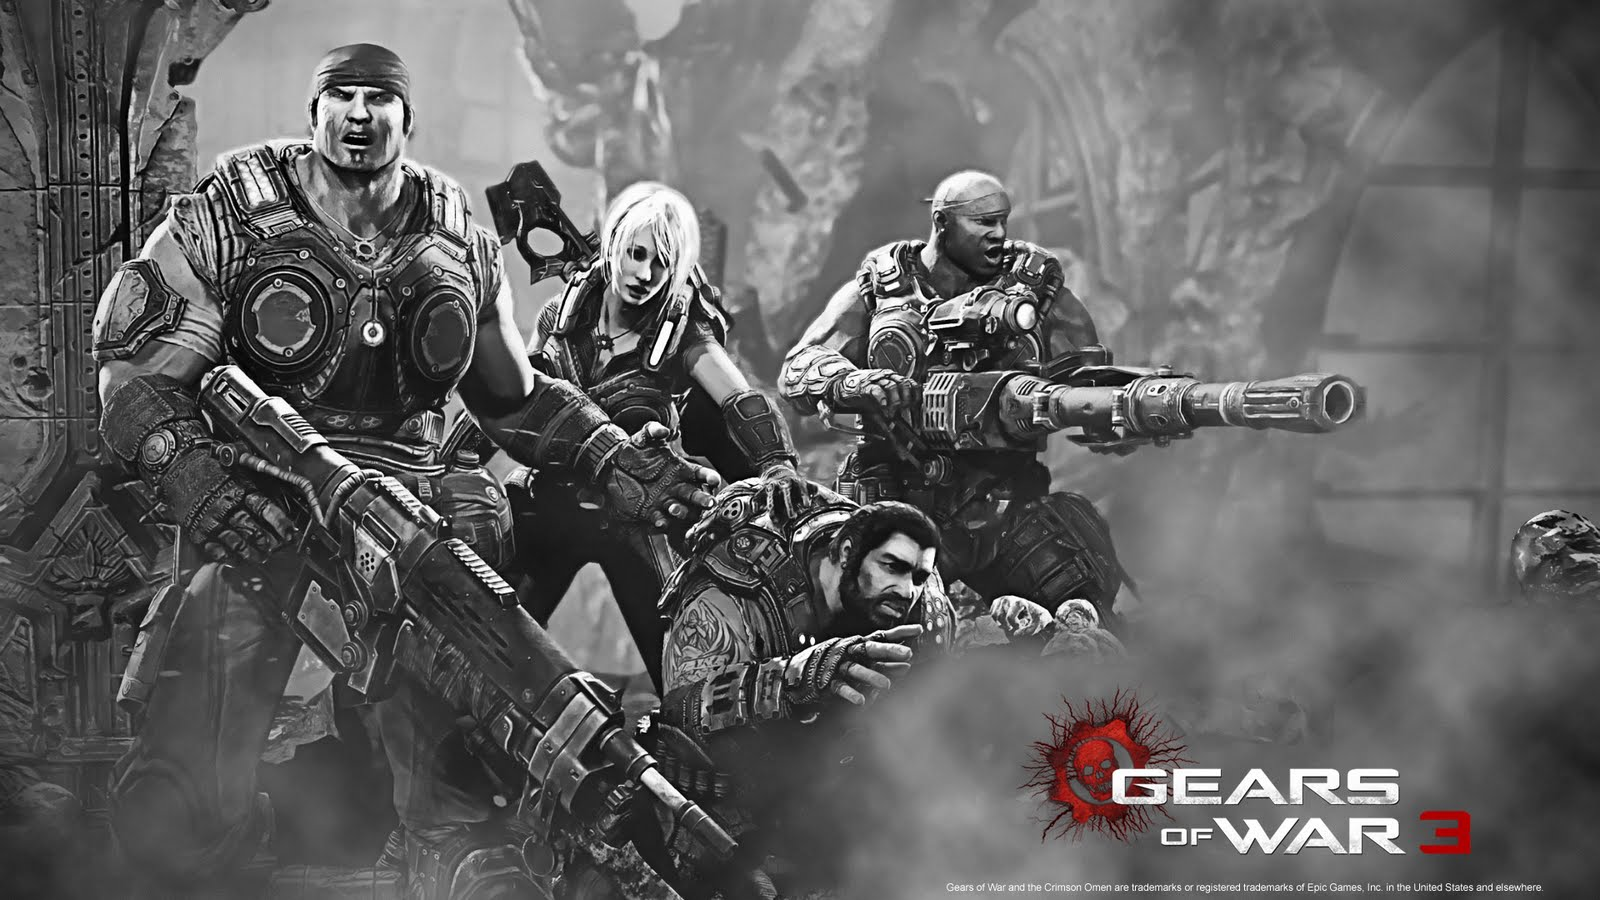 Gears Of War 3 Hd Wallpapers For Android: Wallpaper HD Gears Of War